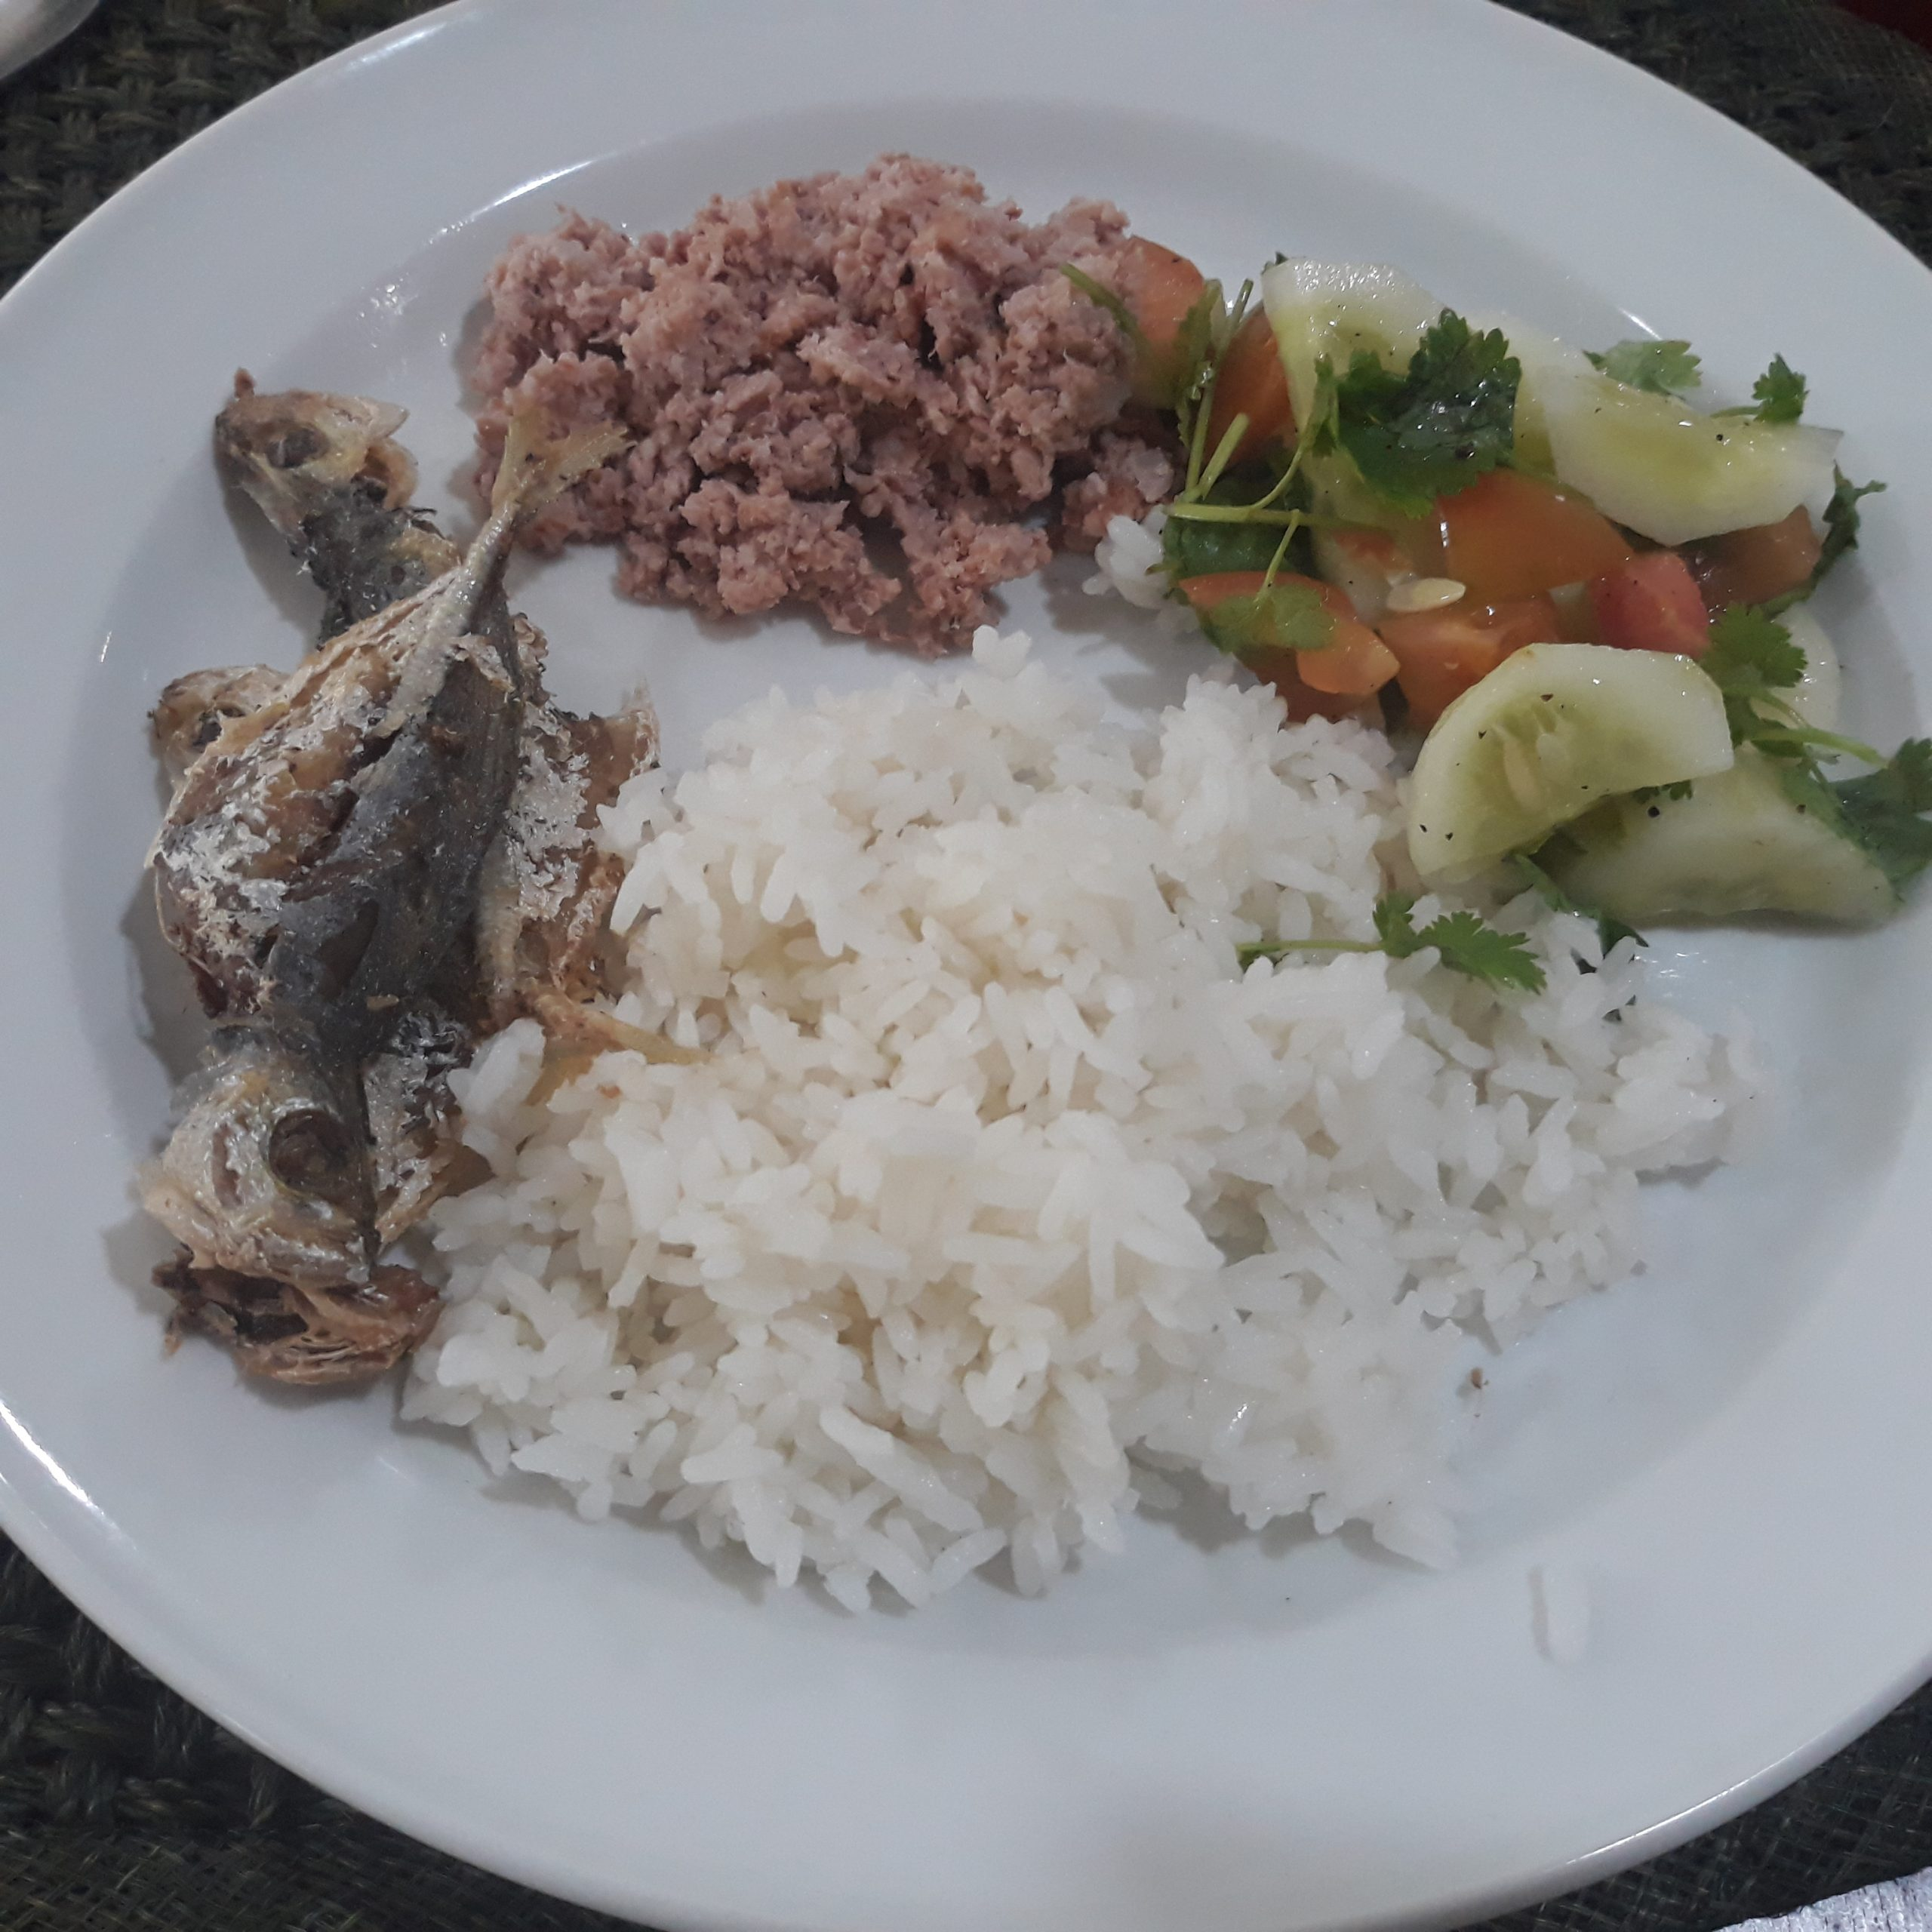 Sinantolan served with rice, fried fish, and veggies on the side.